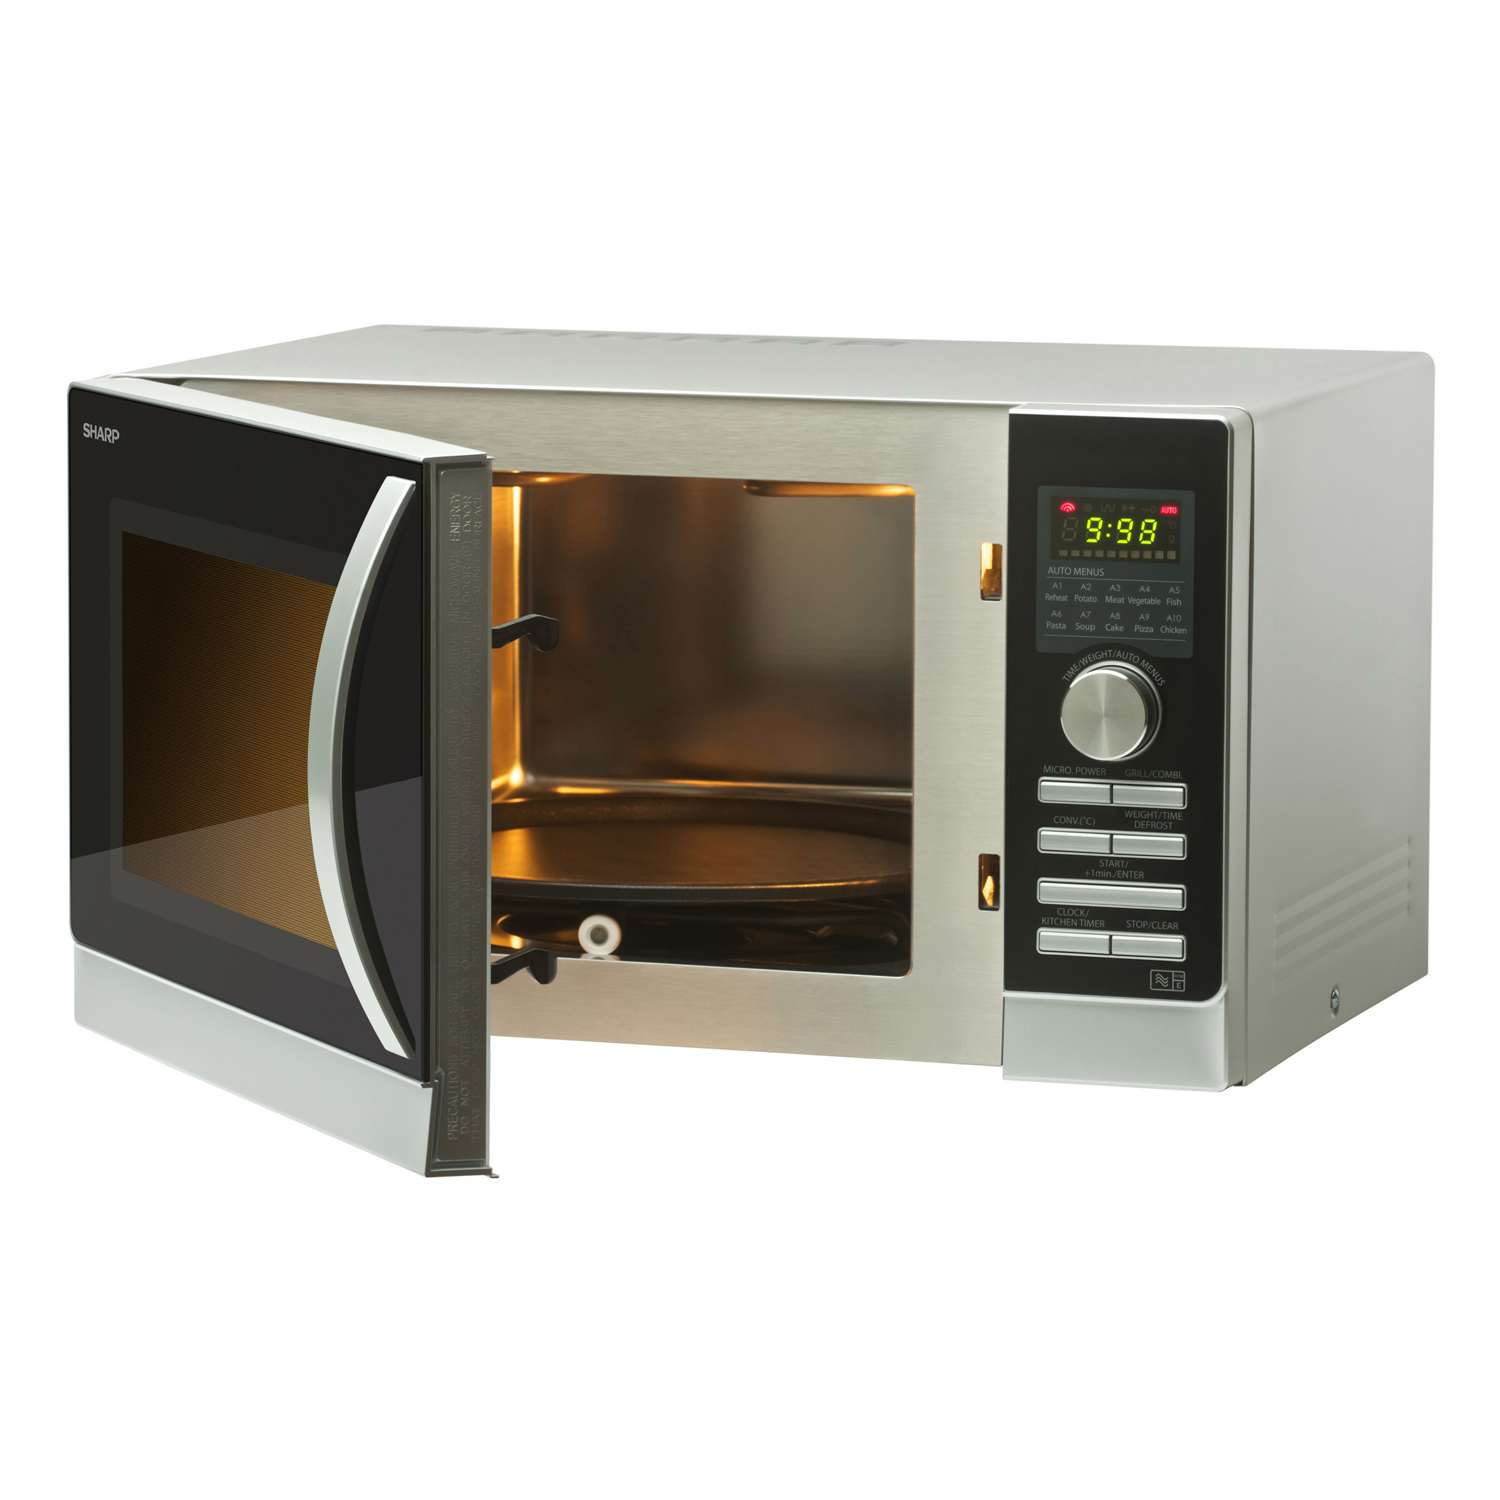 Sharp R843slm 25 Litre 900w Double Grill Combination Microwave Oven In Silver 149 00